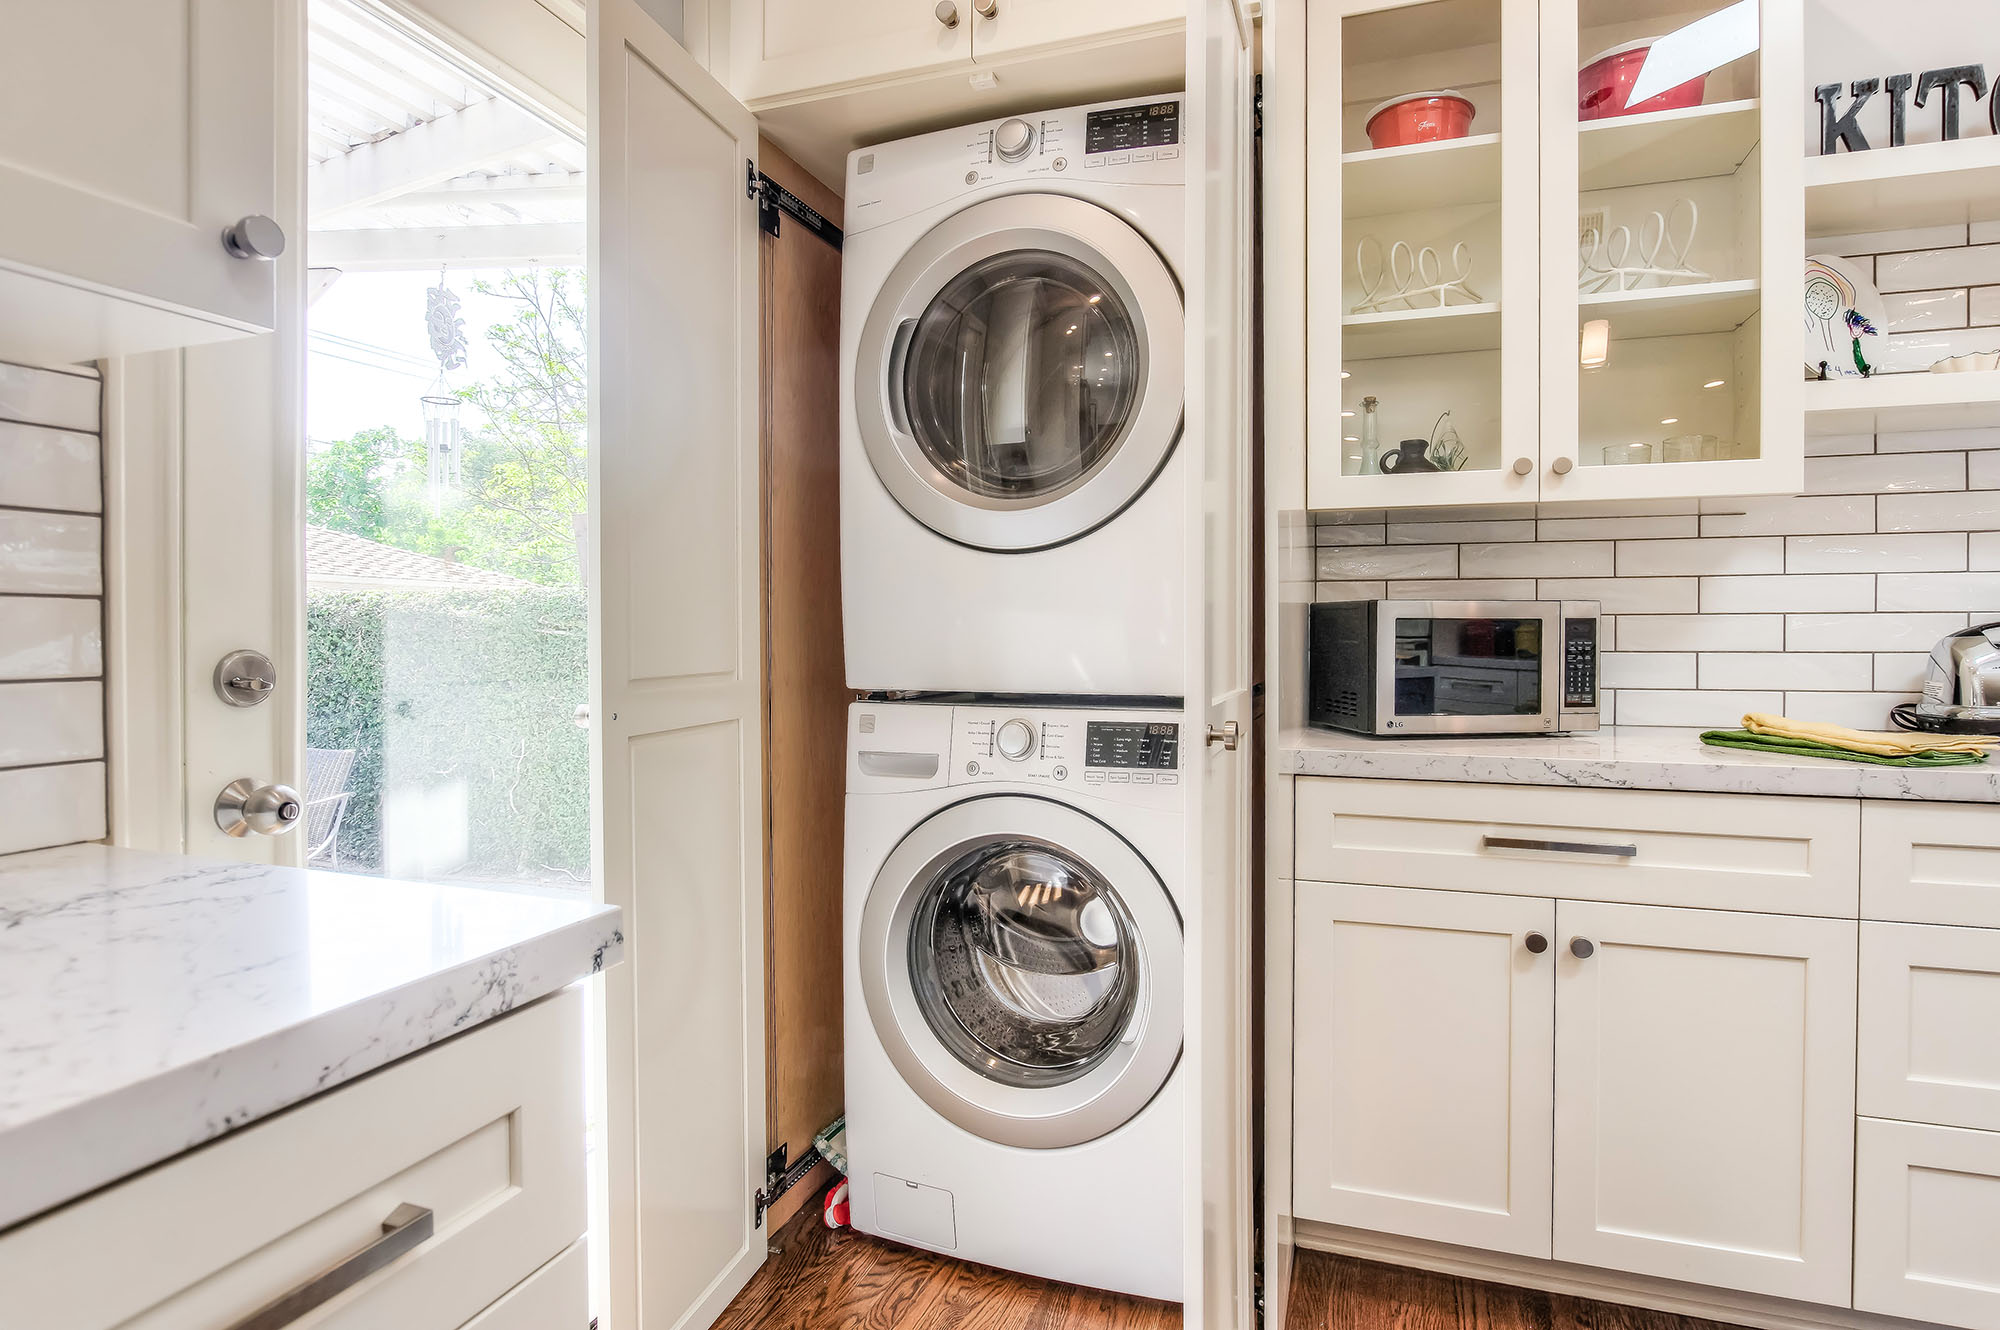 The kitchen includes a custom built cabinet for the washer and dryer extra storage for all laundry needs.